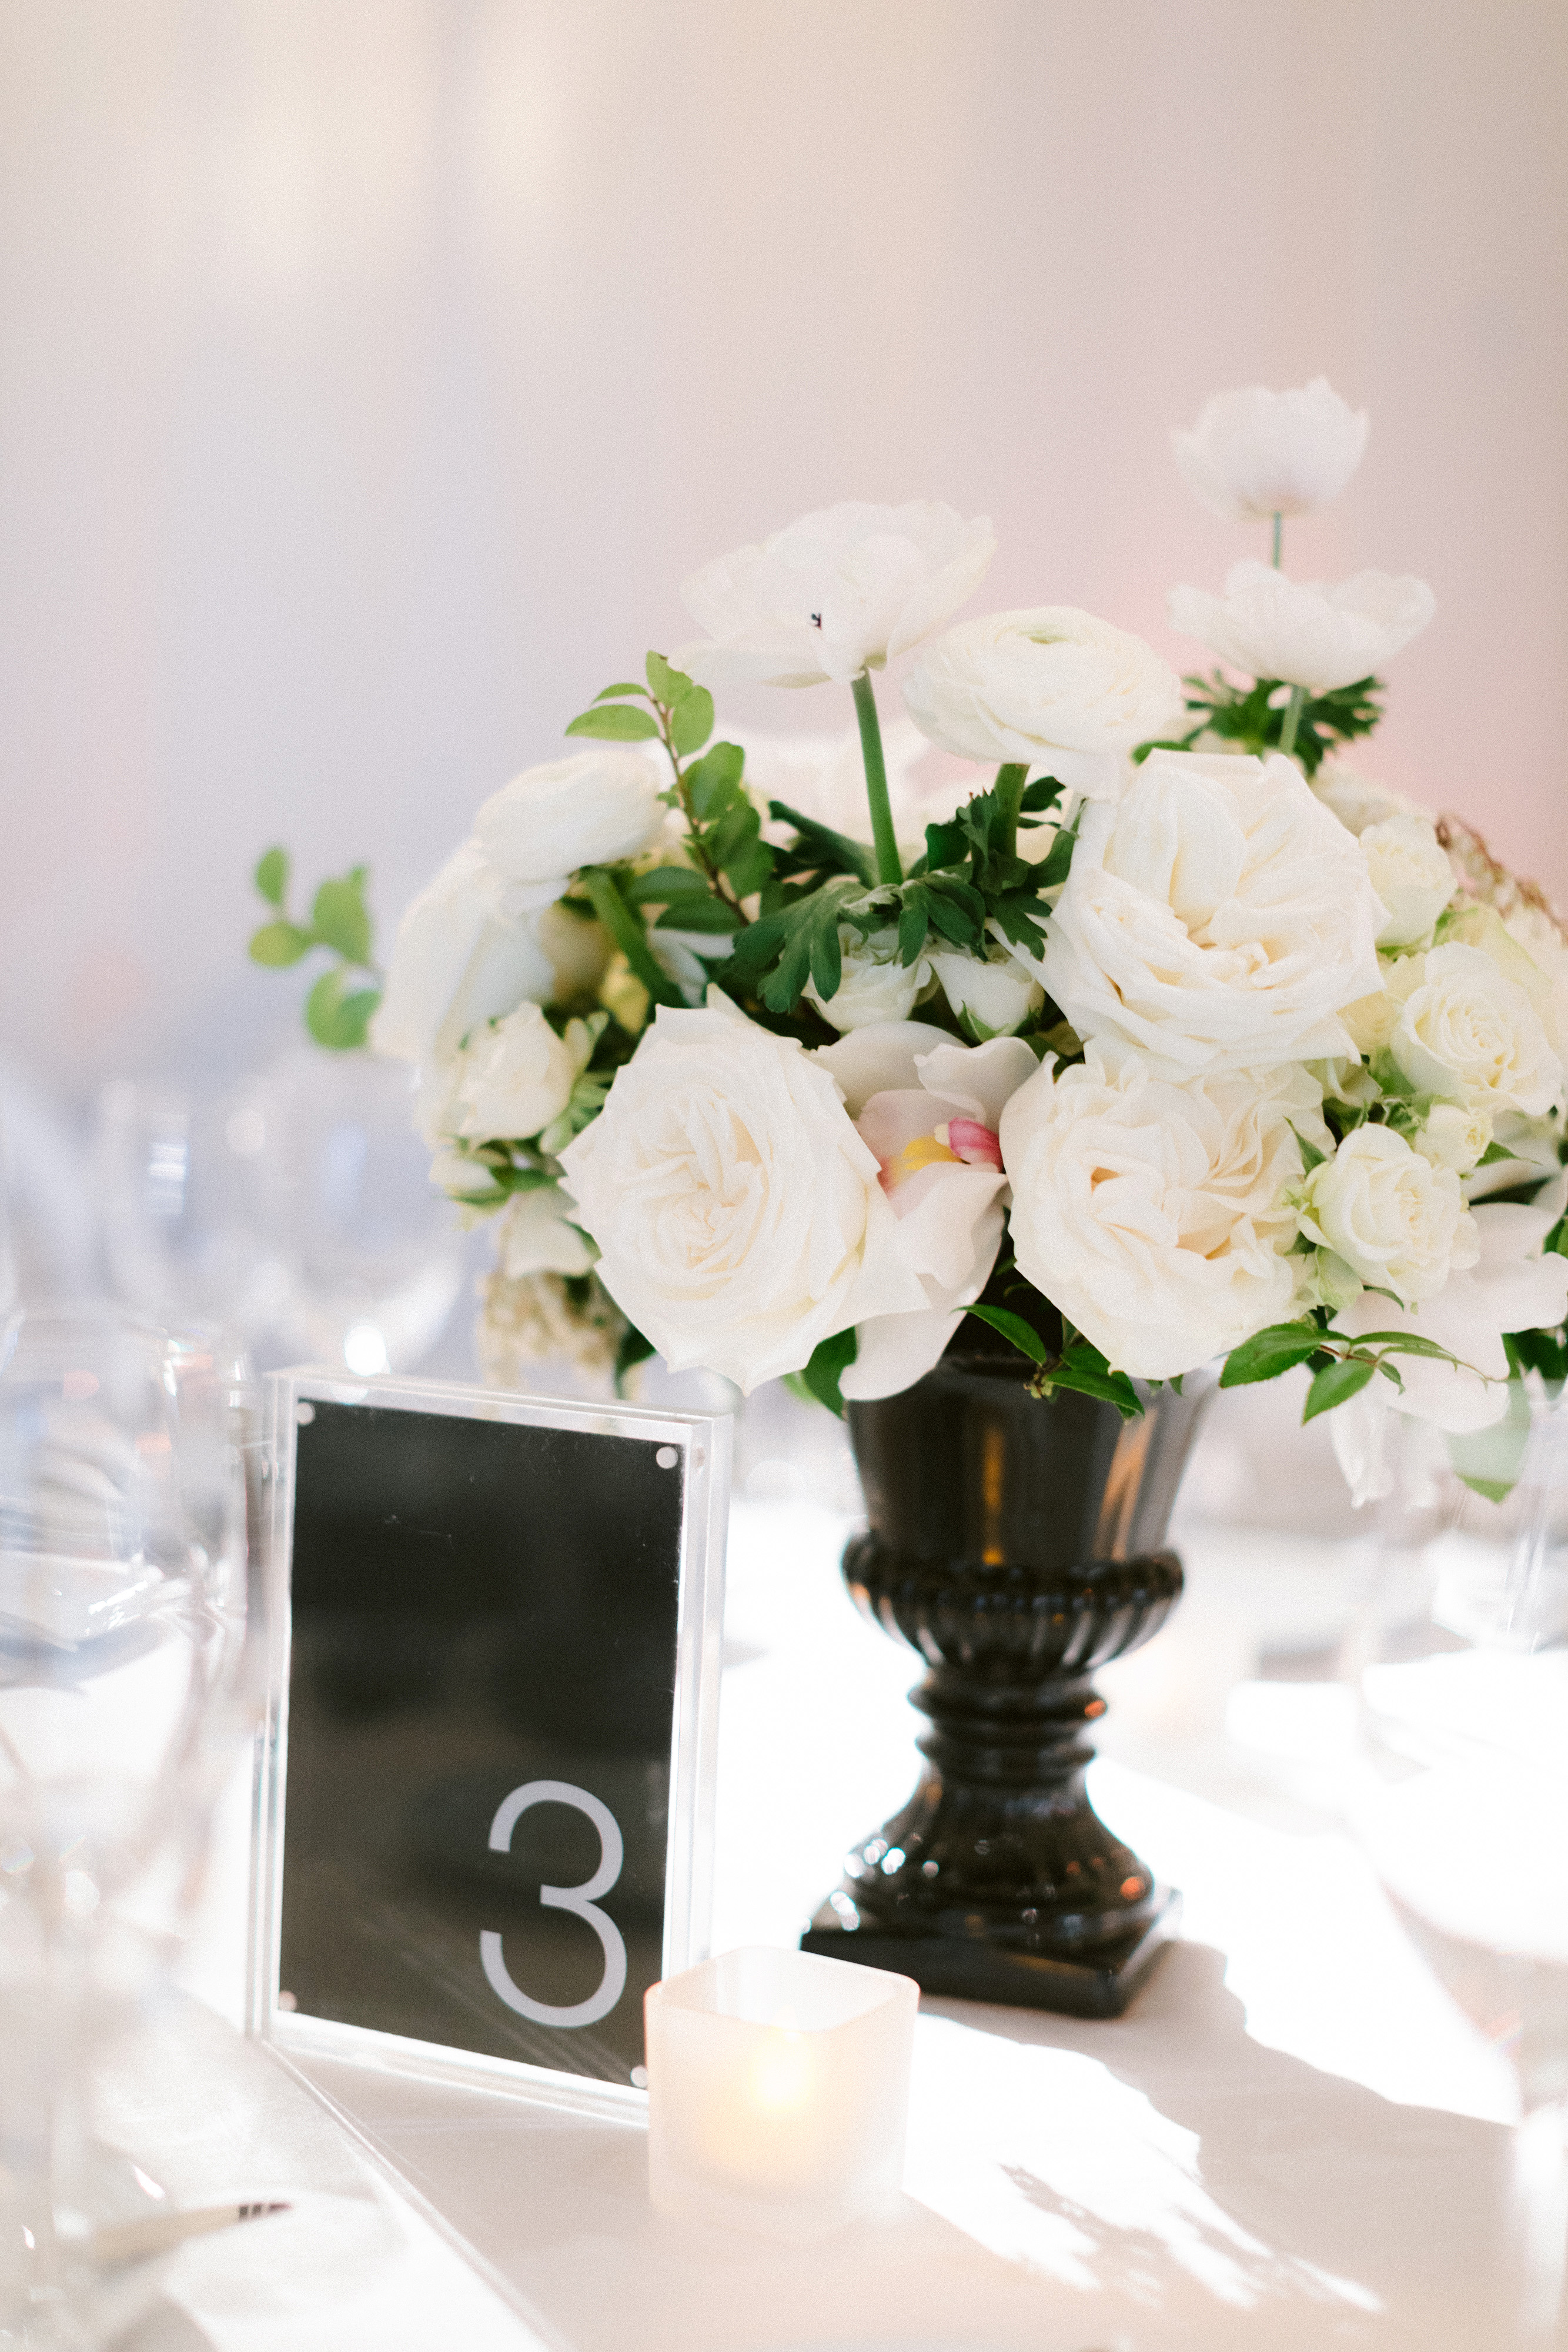 henery michael wedding floral centerpiece and table number